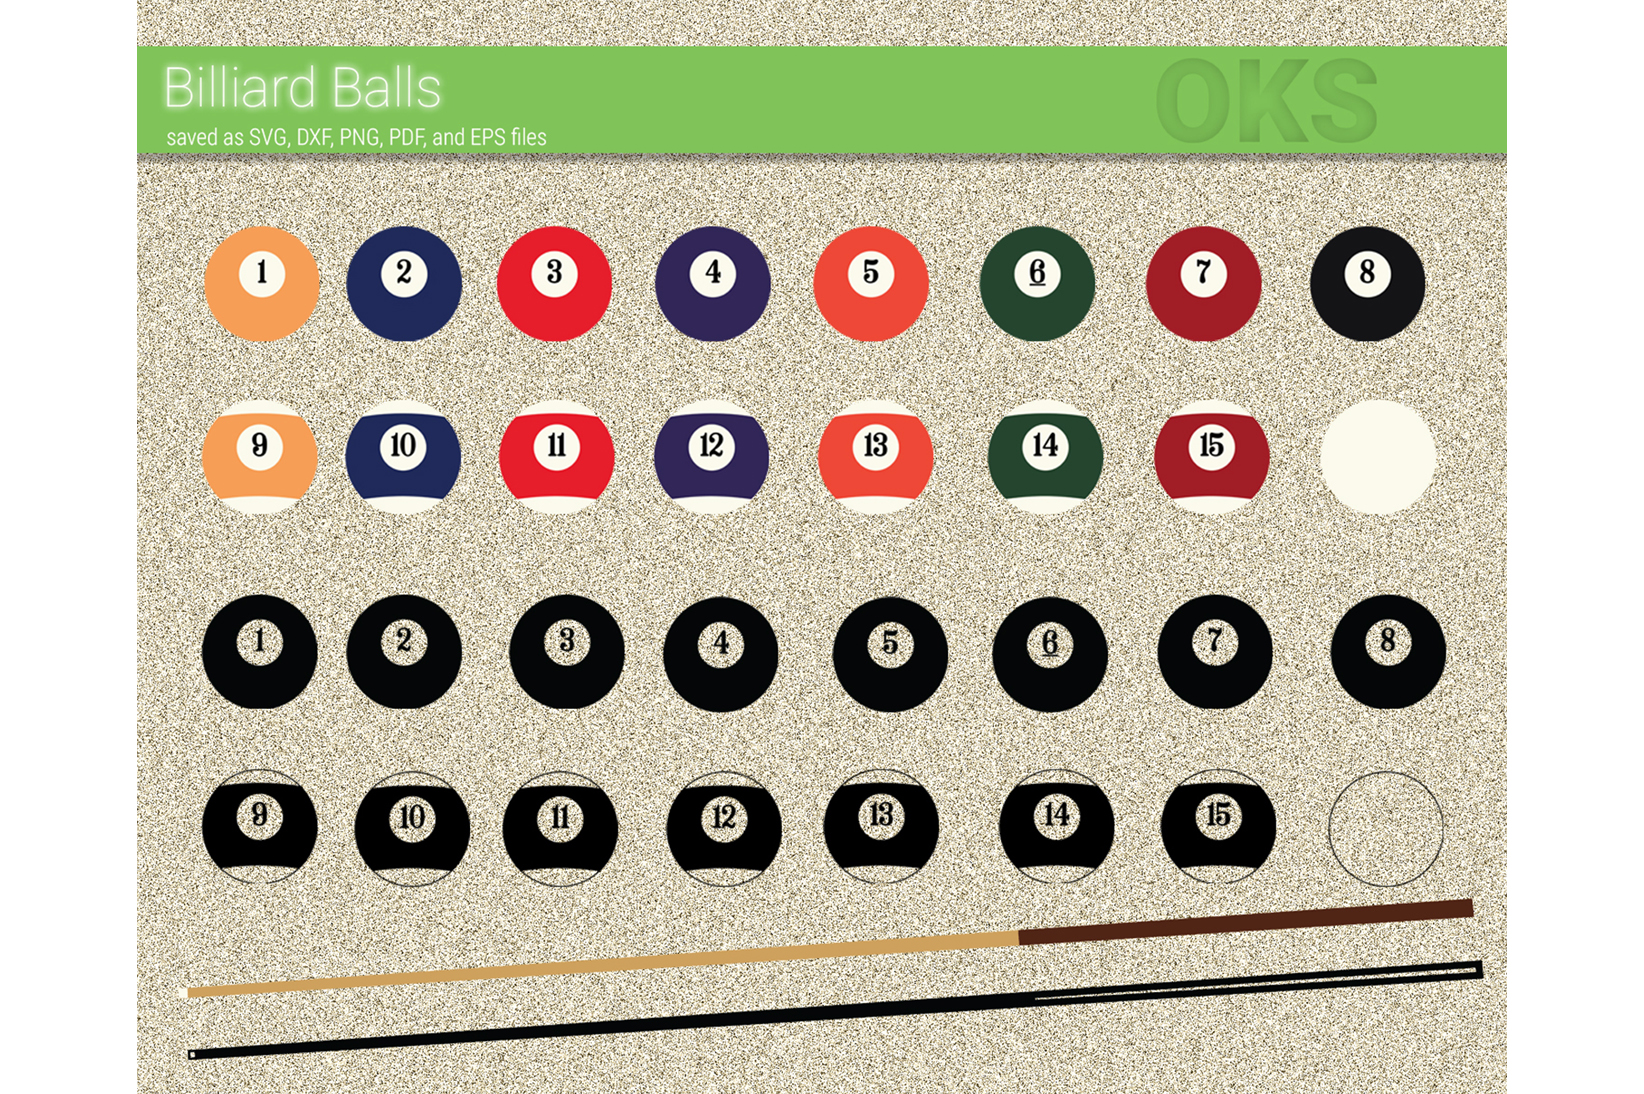 Download Free Billiard Balls Svg Vector Clipart Graphic By Crafteroks for Cricut Explore, Silhouette and other cutting machines.